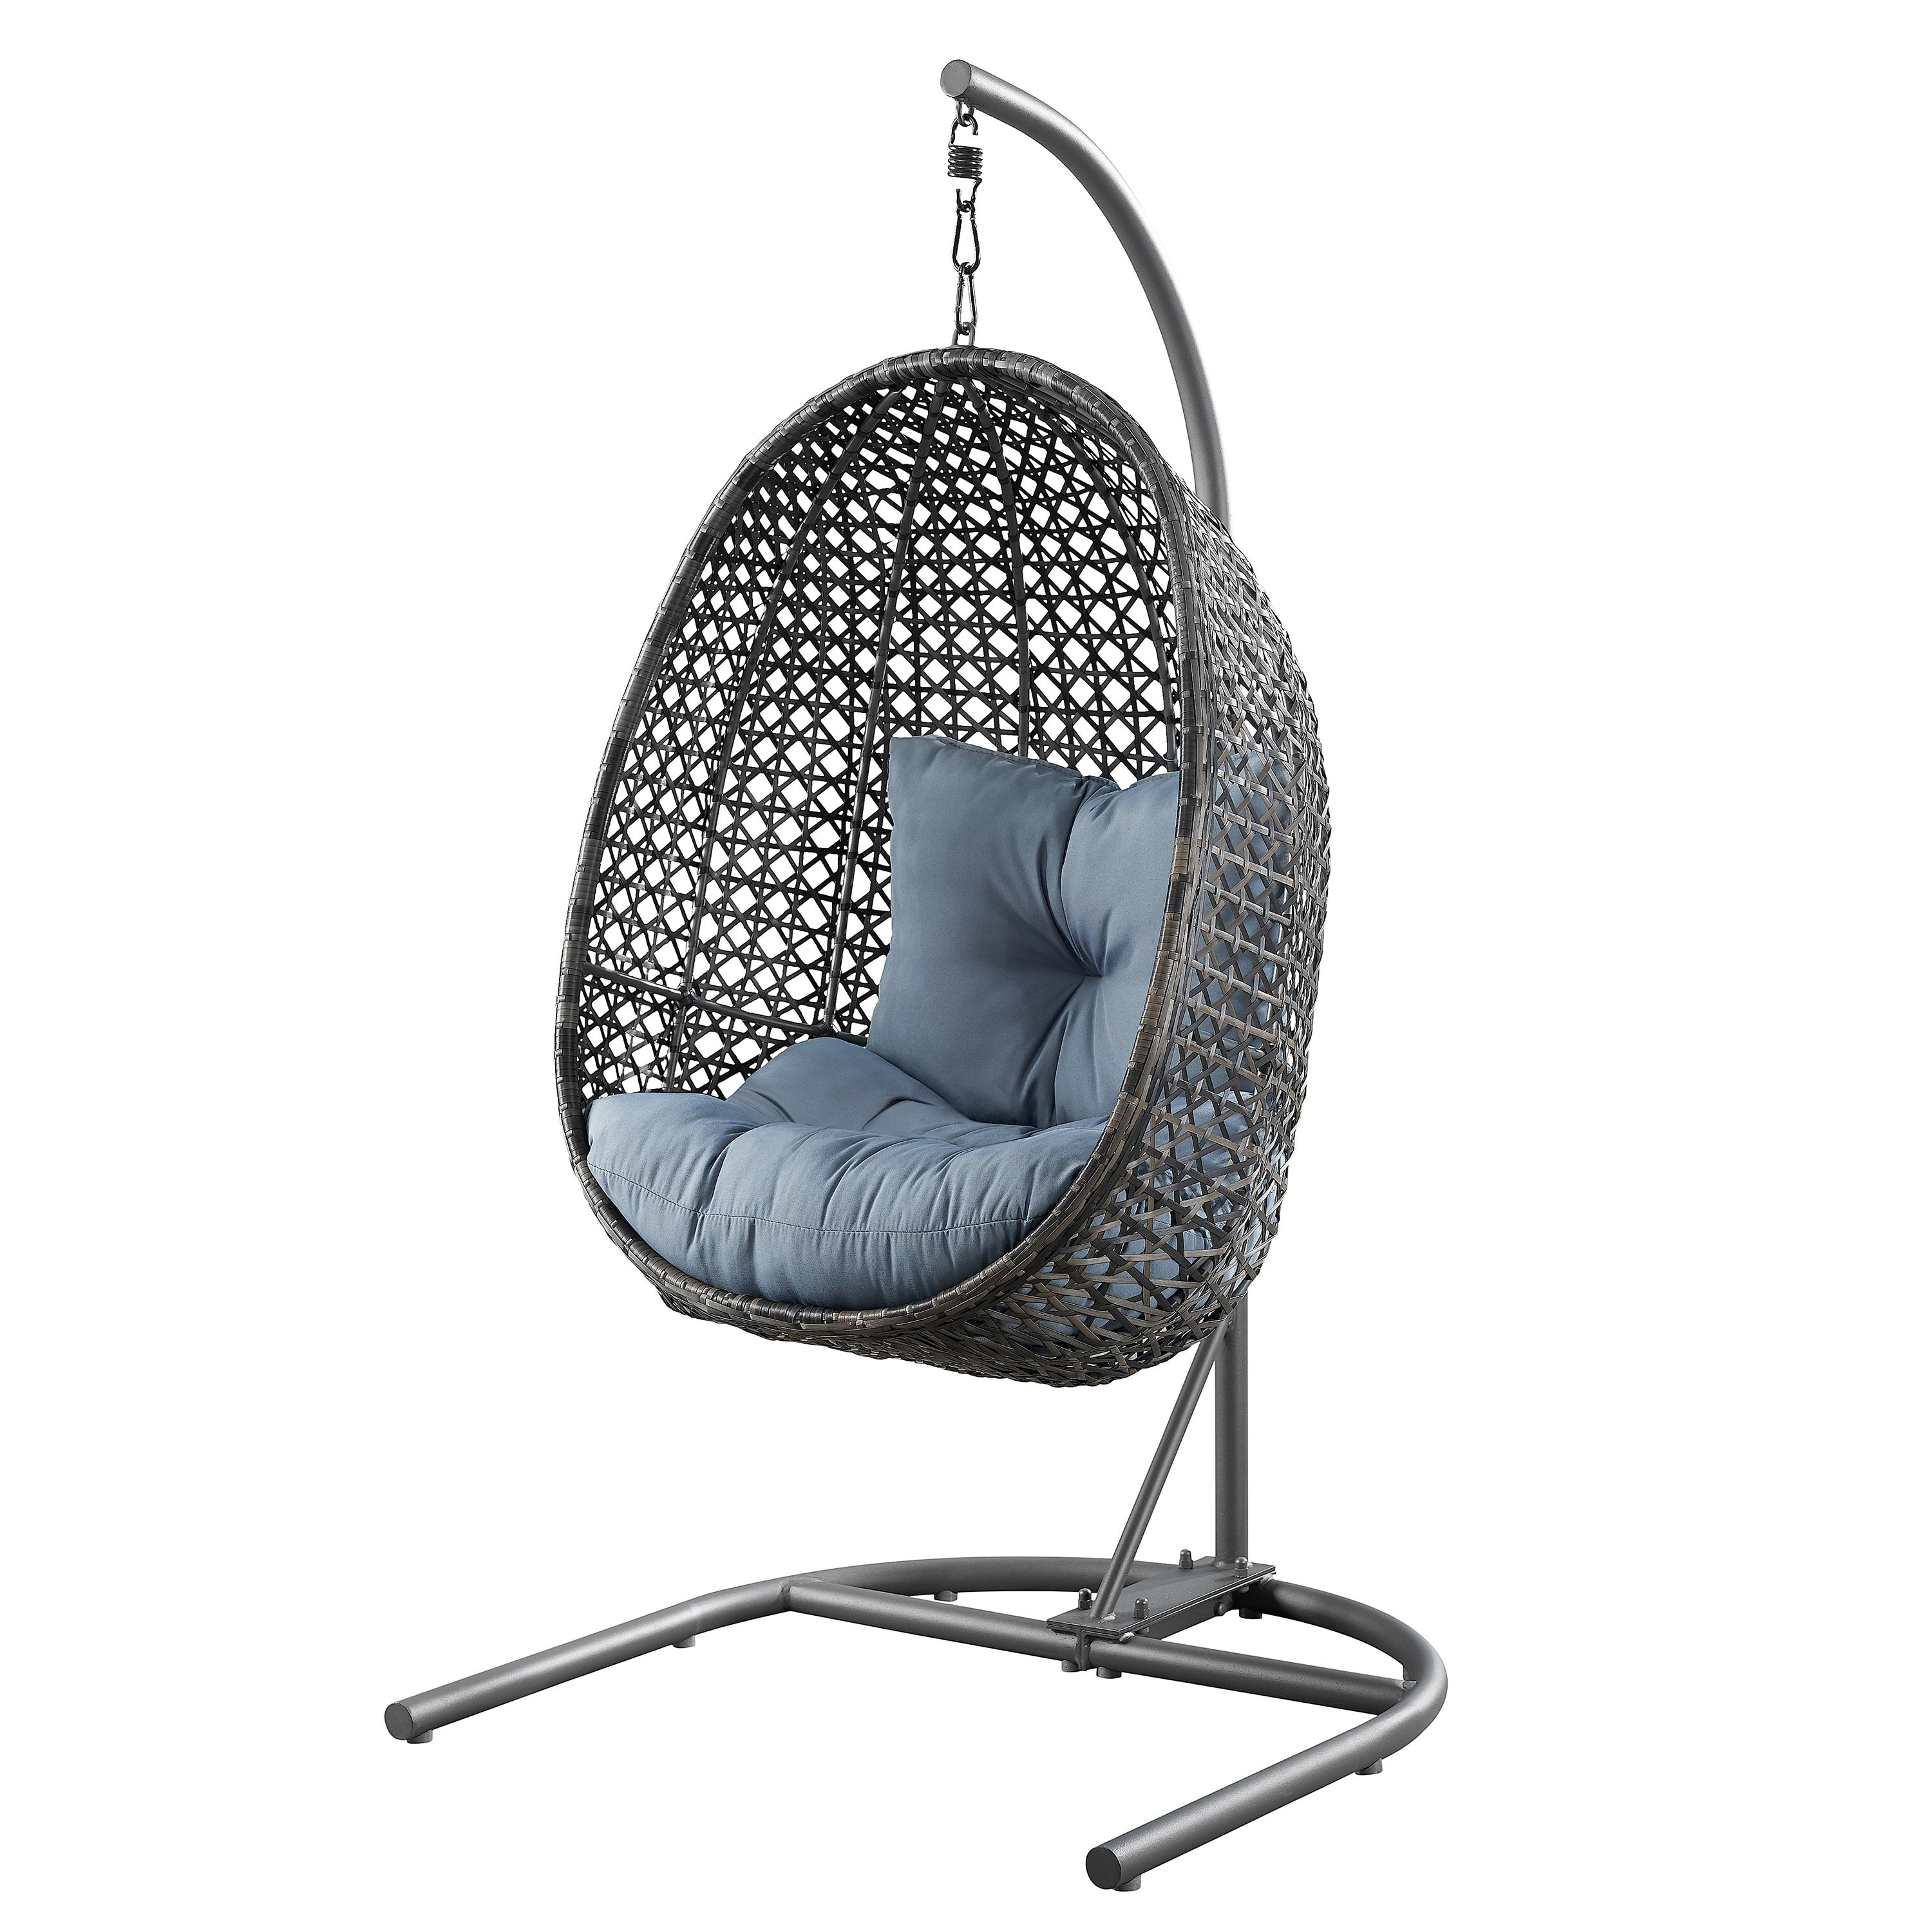 Patio & Garden Hanging chair with stand, Hanging chair